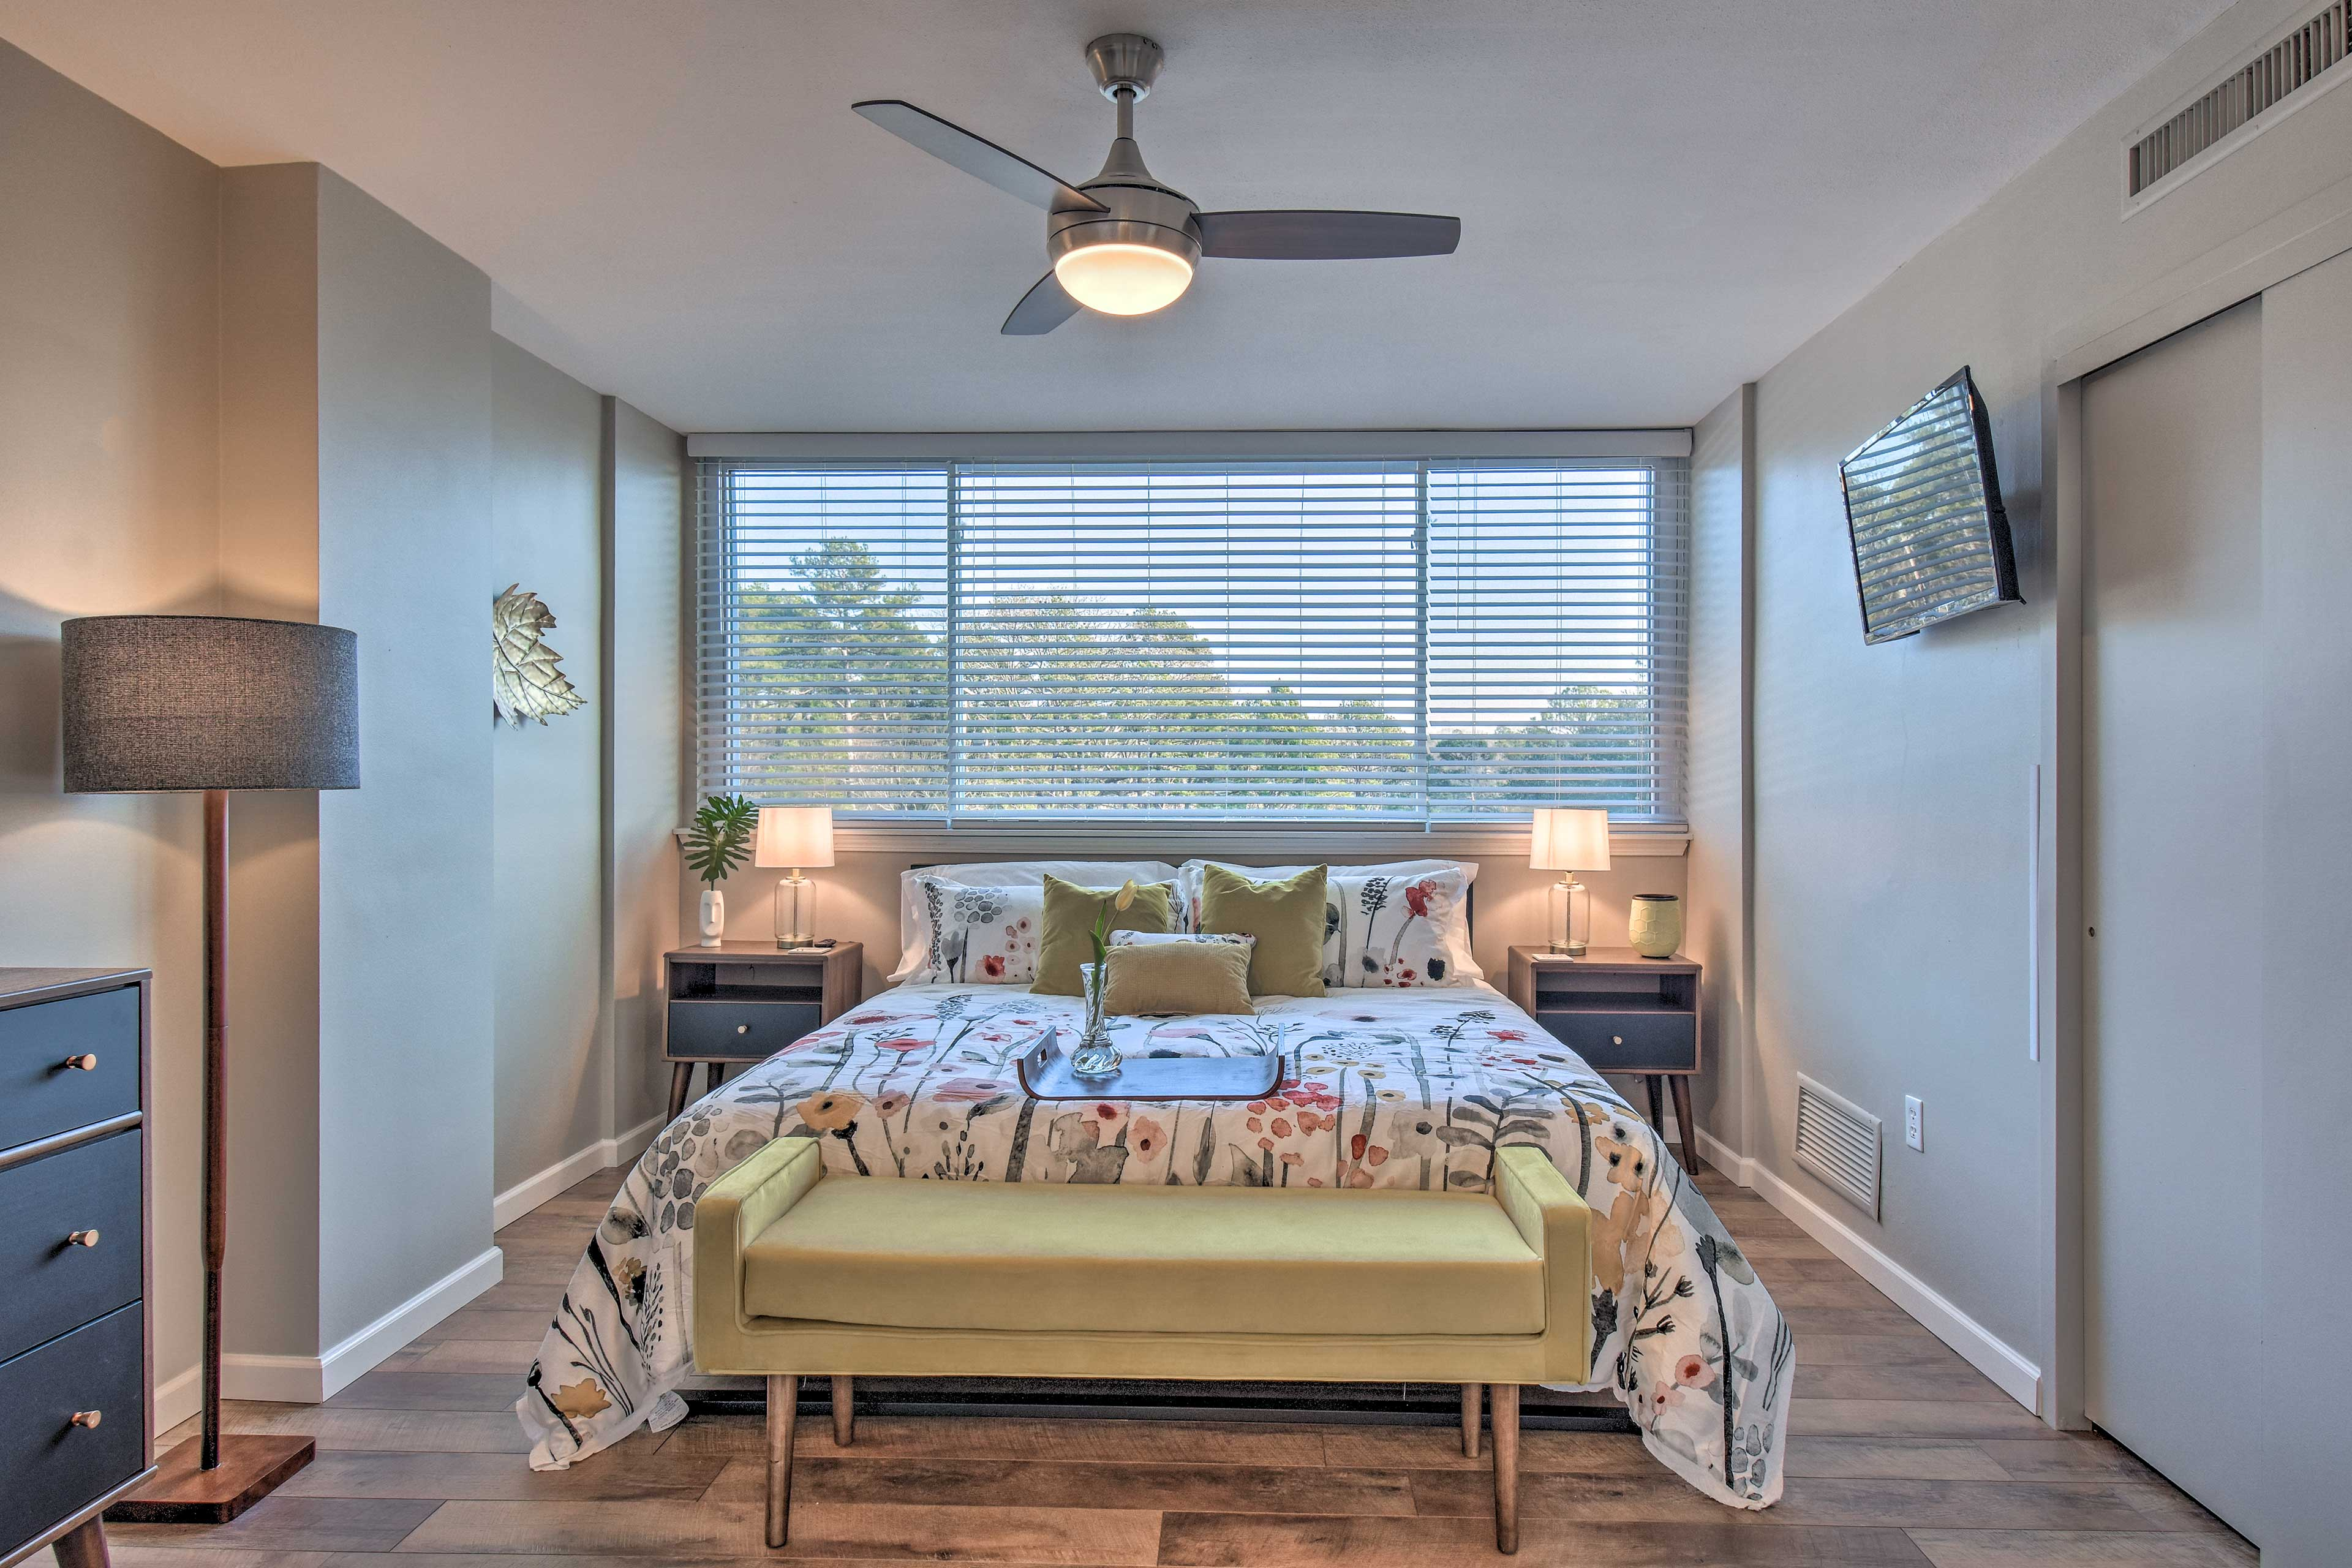 The master bedroom hosts a plush king-sized bed.